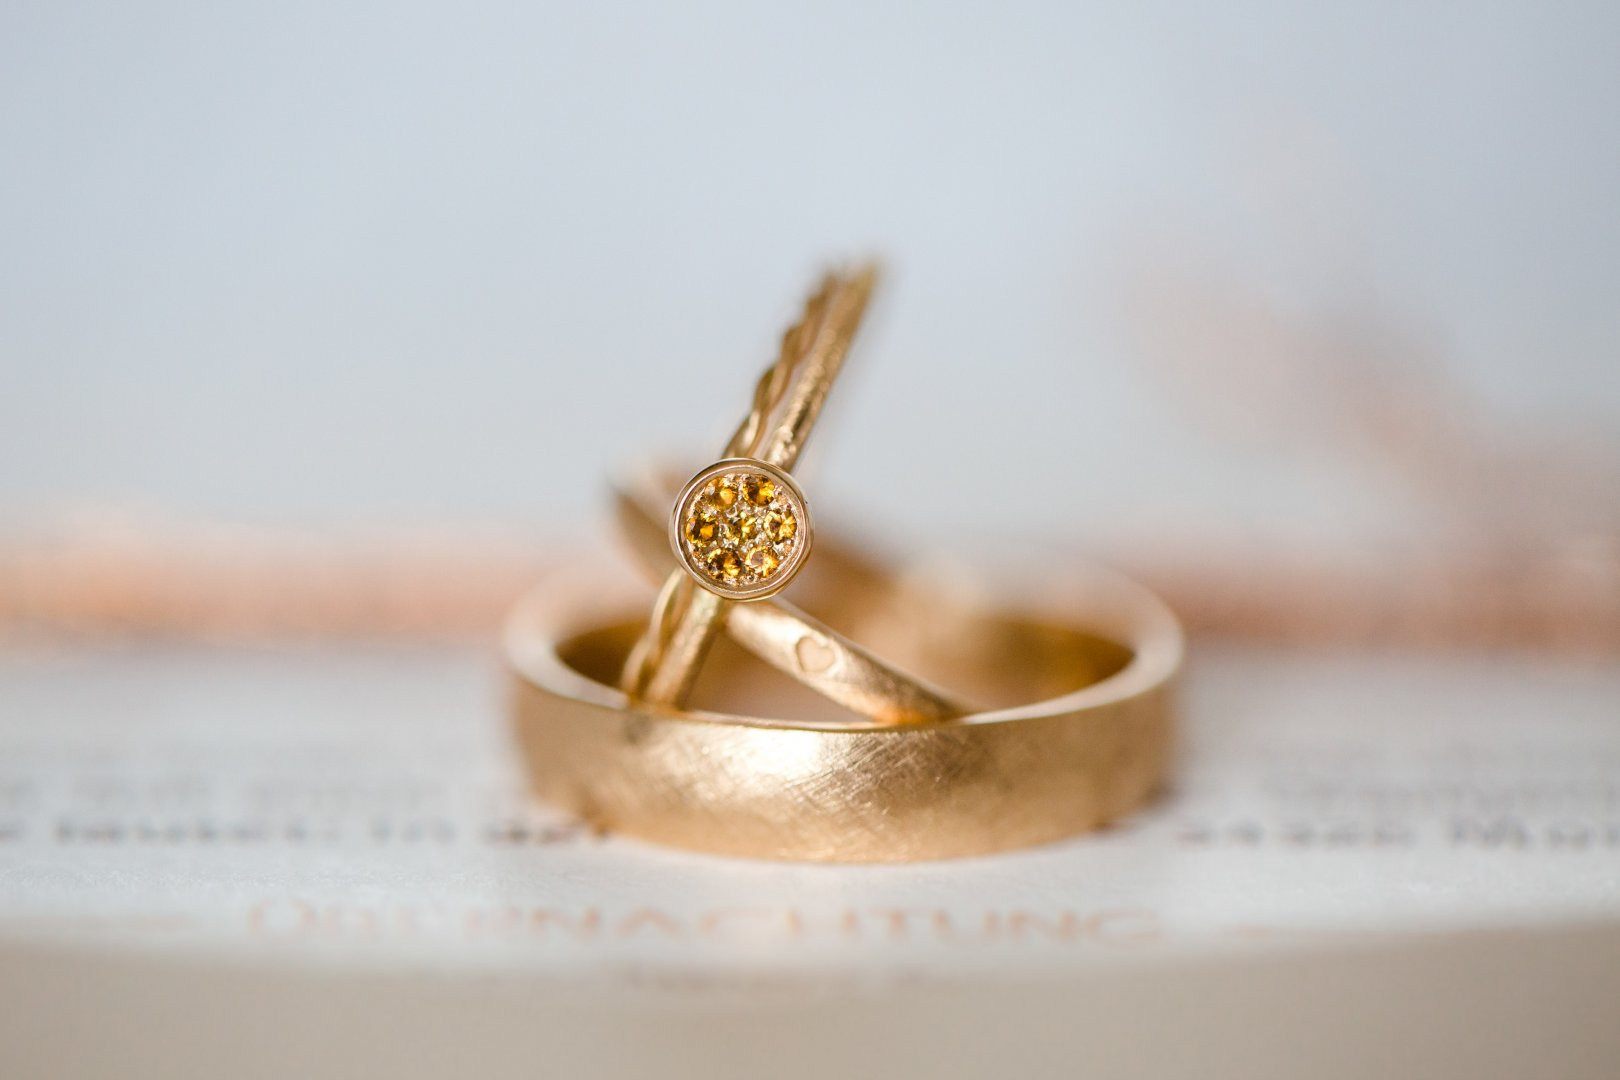 Jewellery Ring Yellow Fashion accessory Wedding ring Wedding ceremony supply Gold Metal Engagement ring Body jewelry